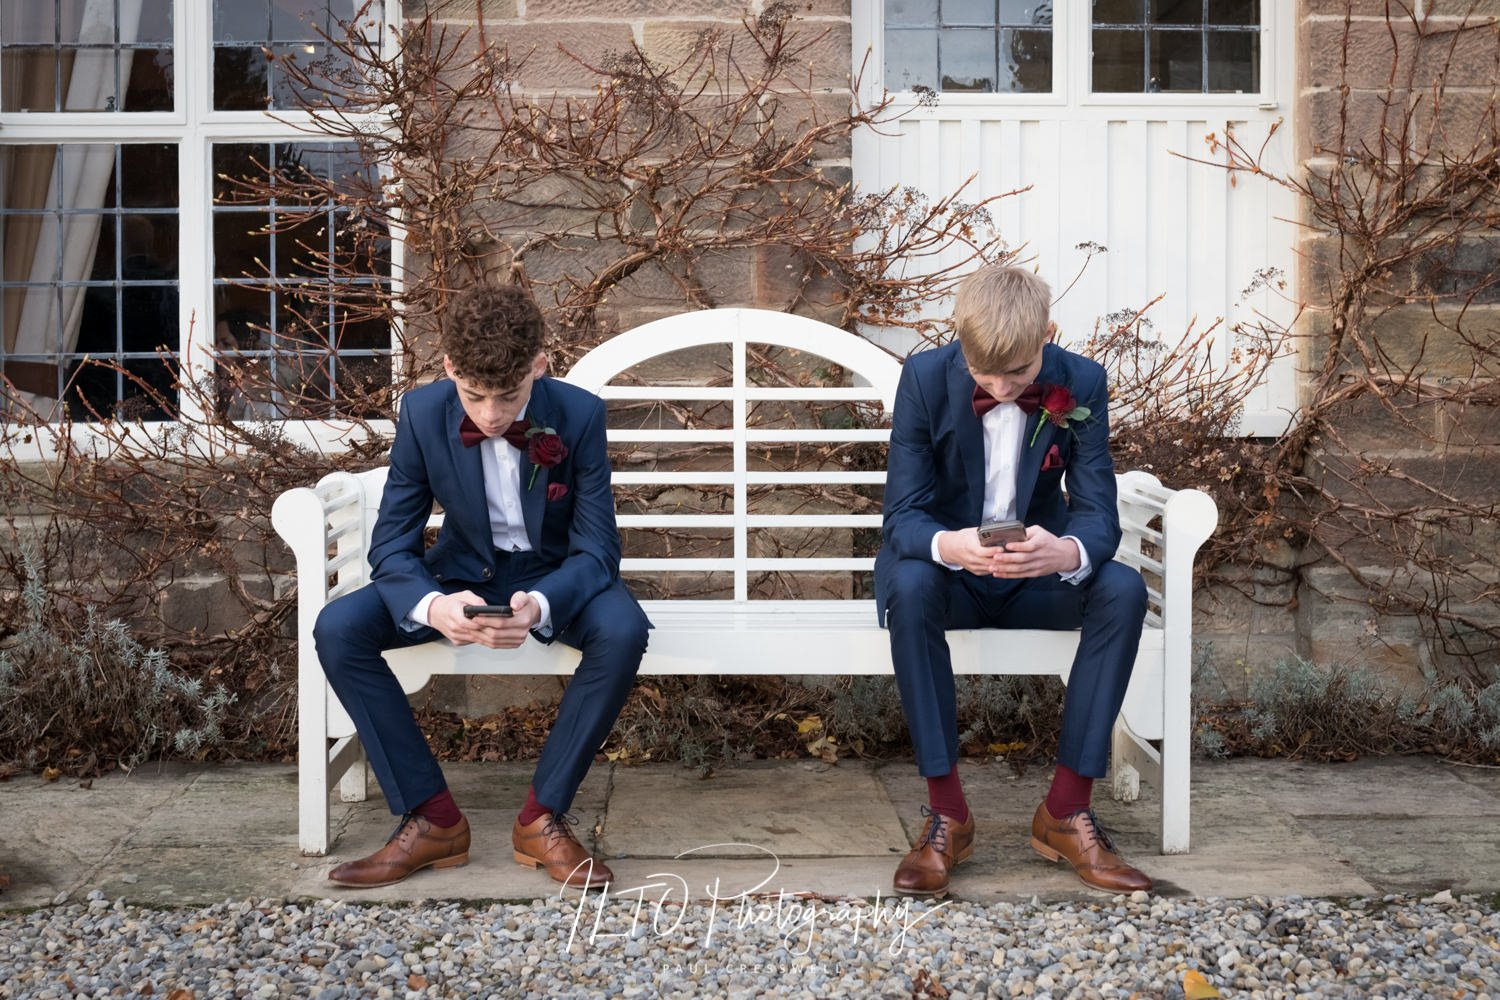 Teenagers on phones at a wedding